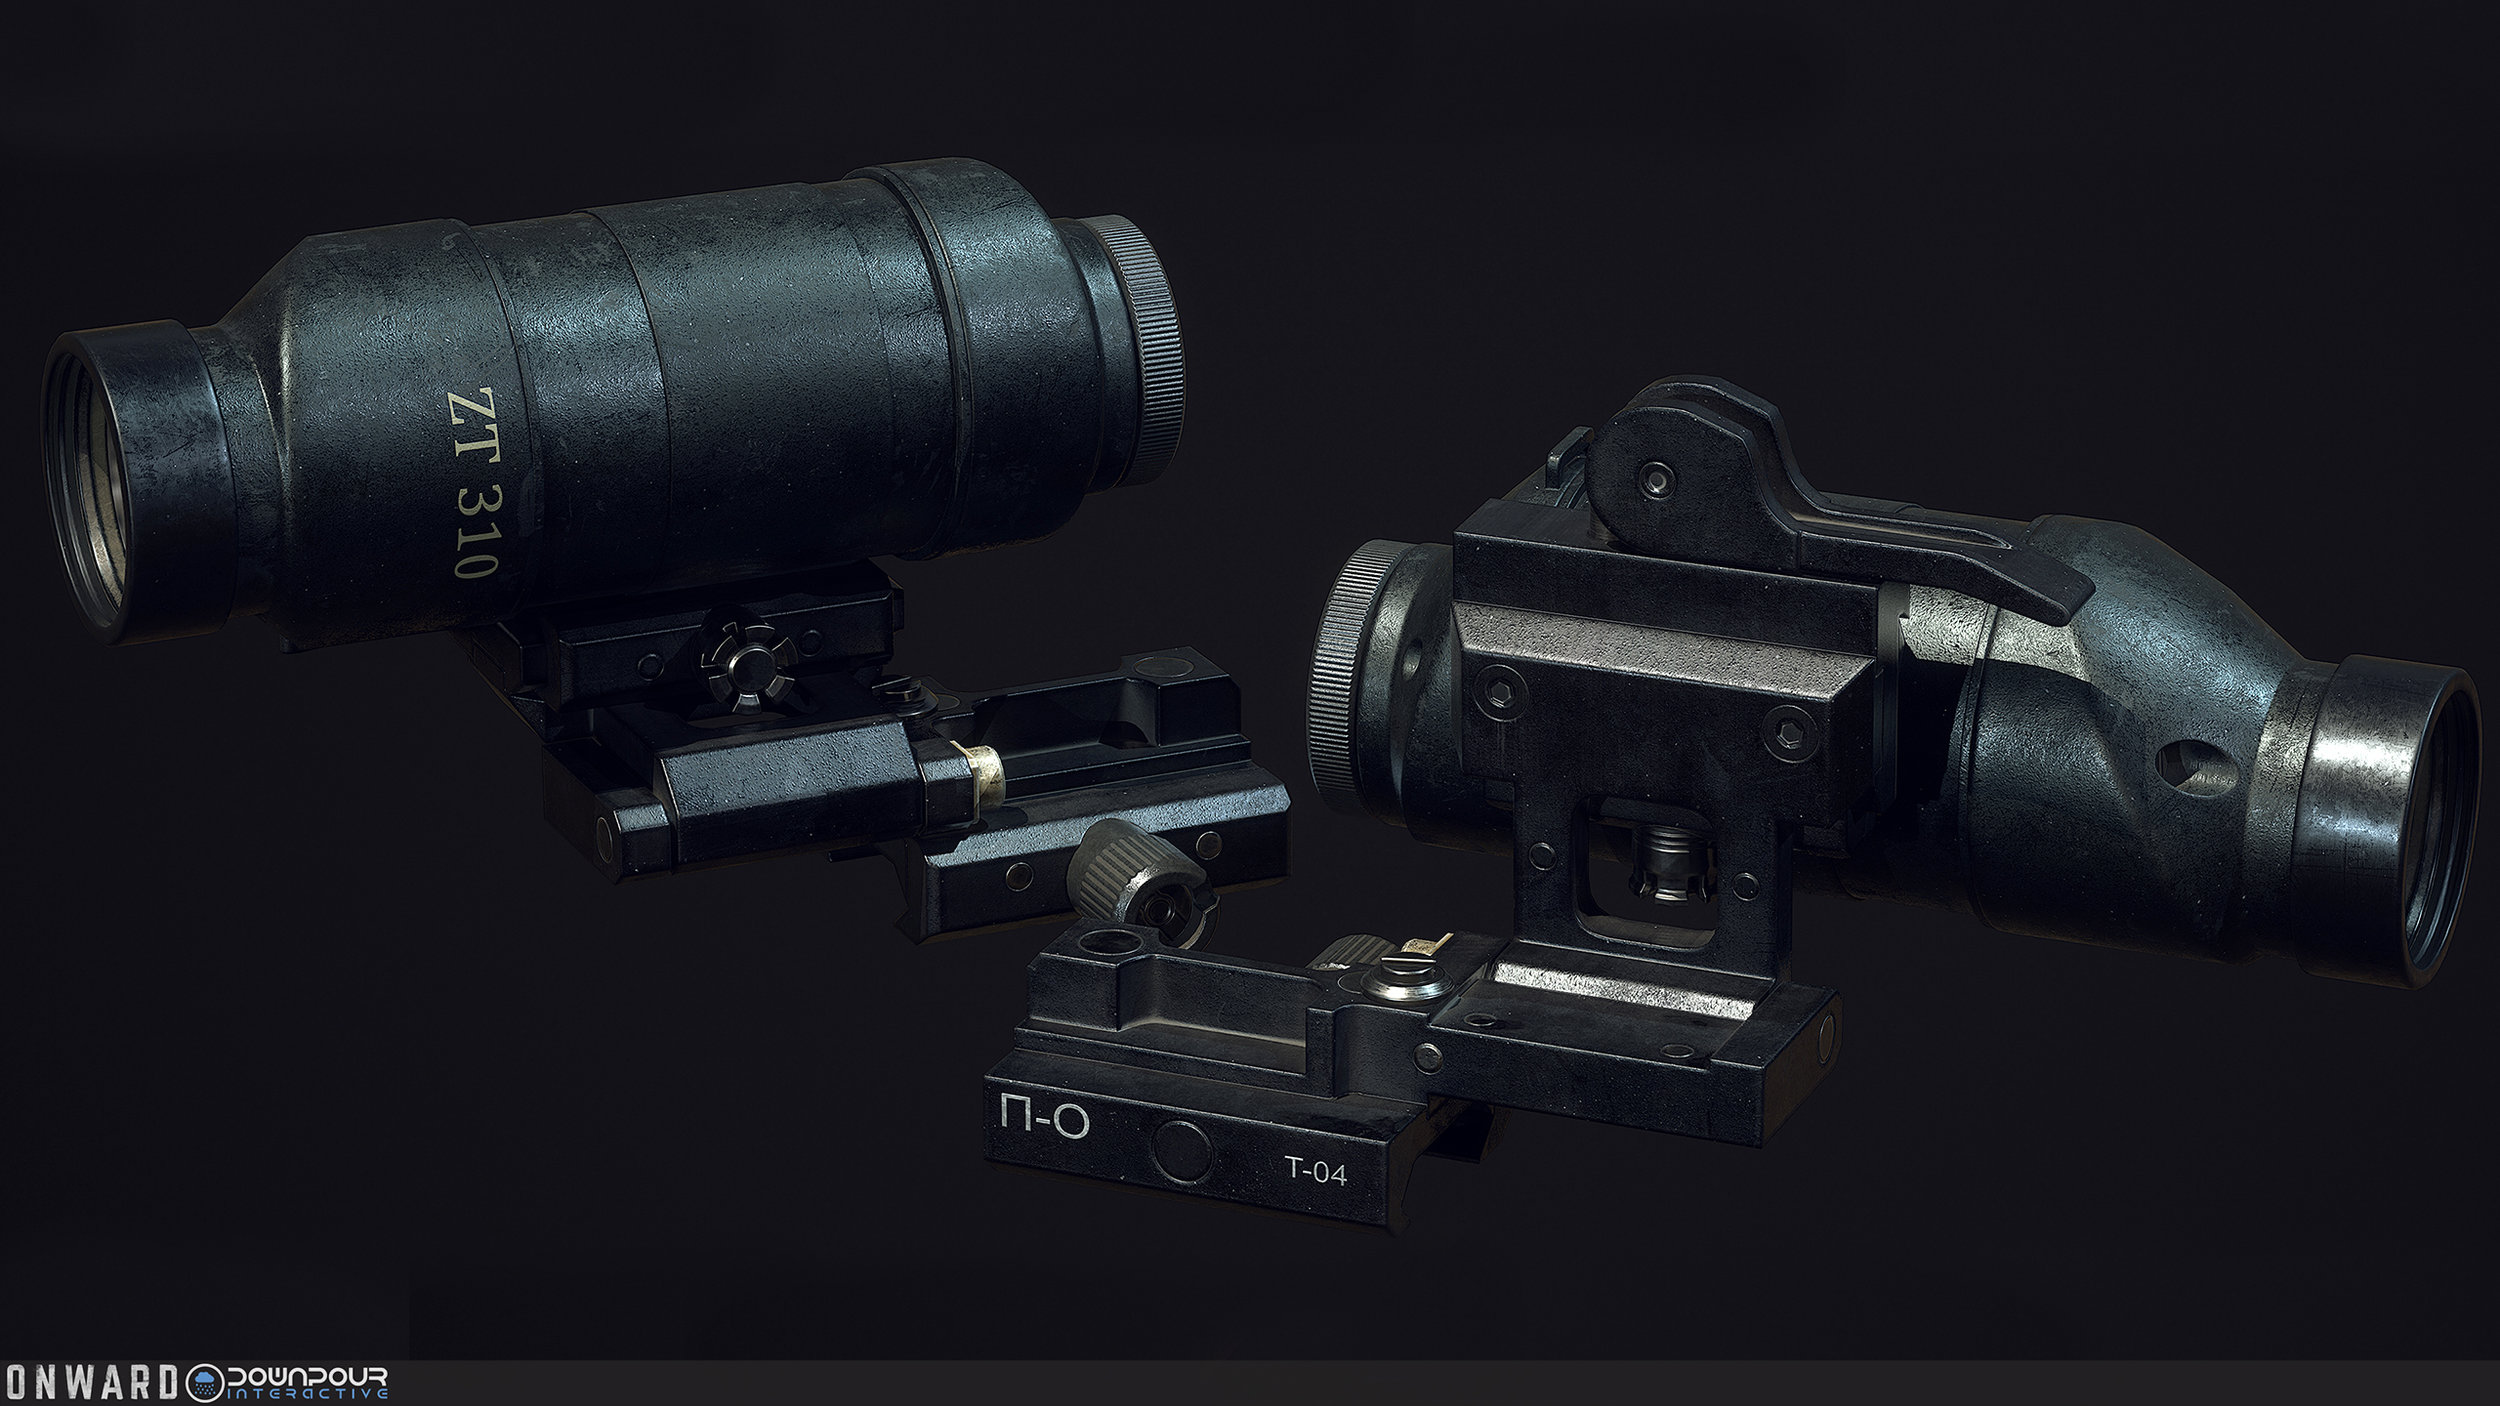 The new flip-up magnifier, used with the new holographic sight on the volk team.